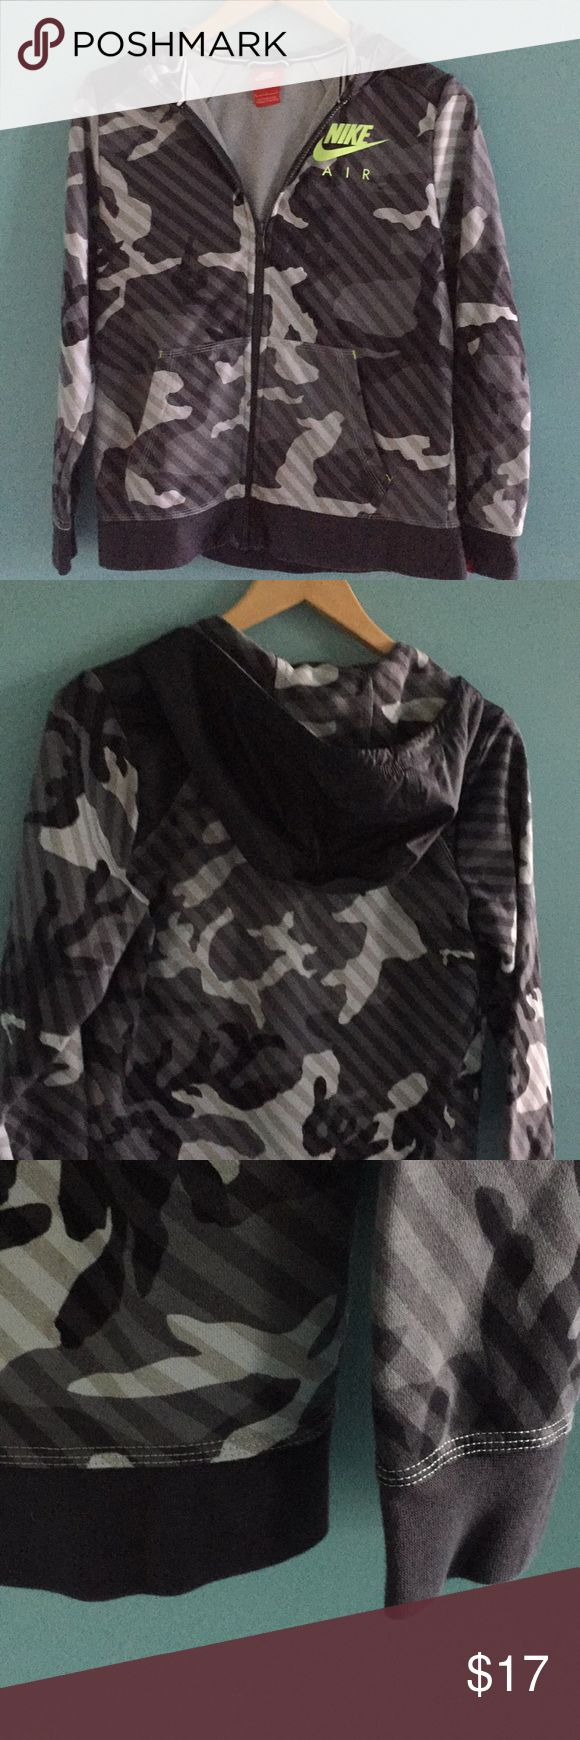 Nike zip hoodie jacket Multi media Zip up hoodie jacket in grey camo pattern. Shoulders and hoodie in water repellent material, rest of the body in sweatshirt material. Fits true to size, hardly worn - in mint condition. Nike Jackets & Coats